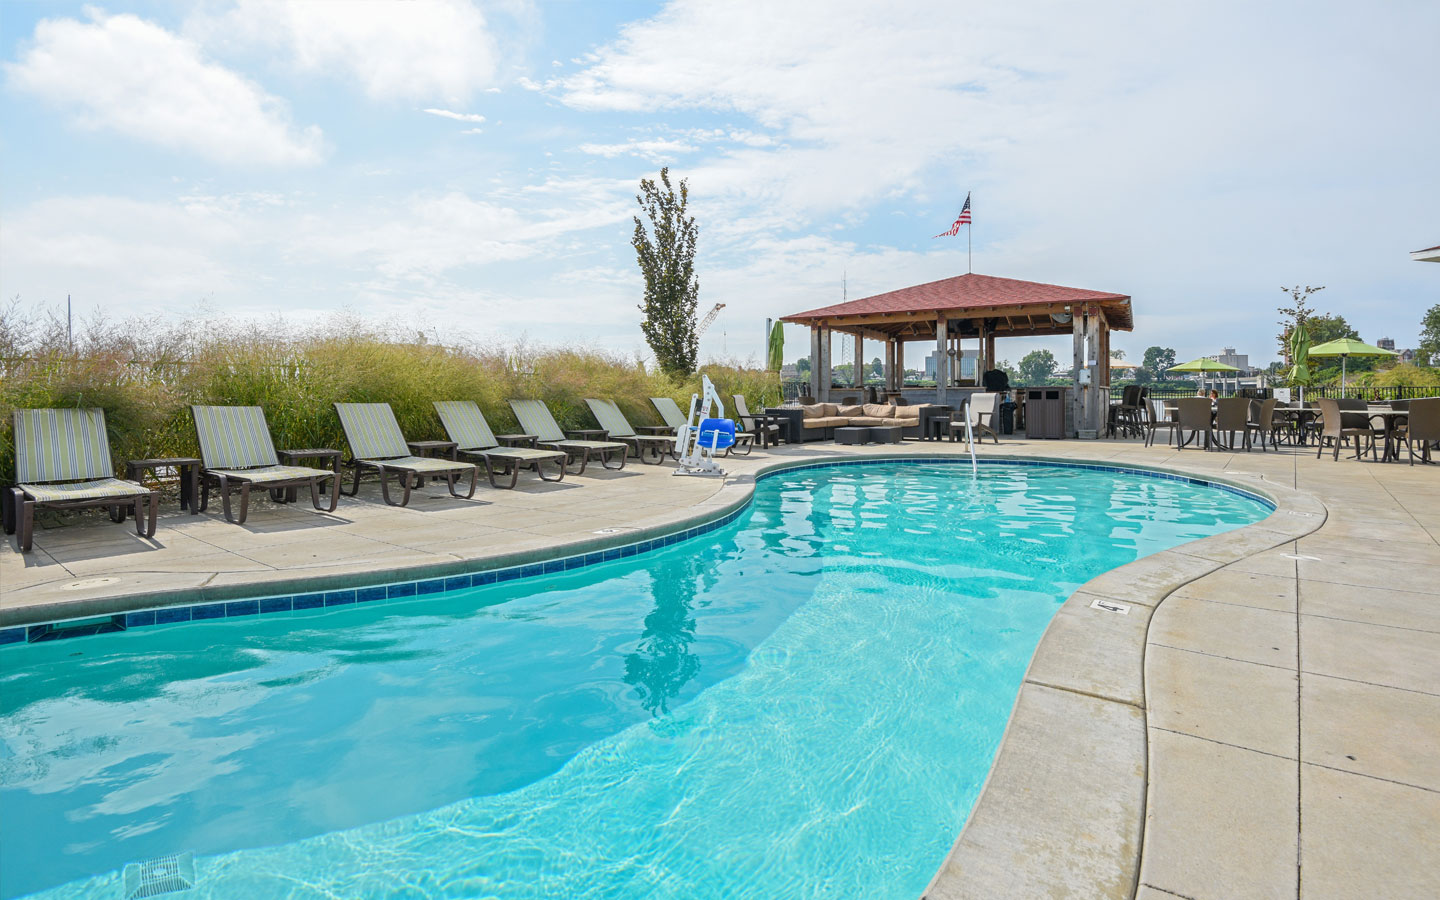 Places To Stay In St Joseph Michigan >> Hotel Services Amenities Indoor Outdoor Pool Spa